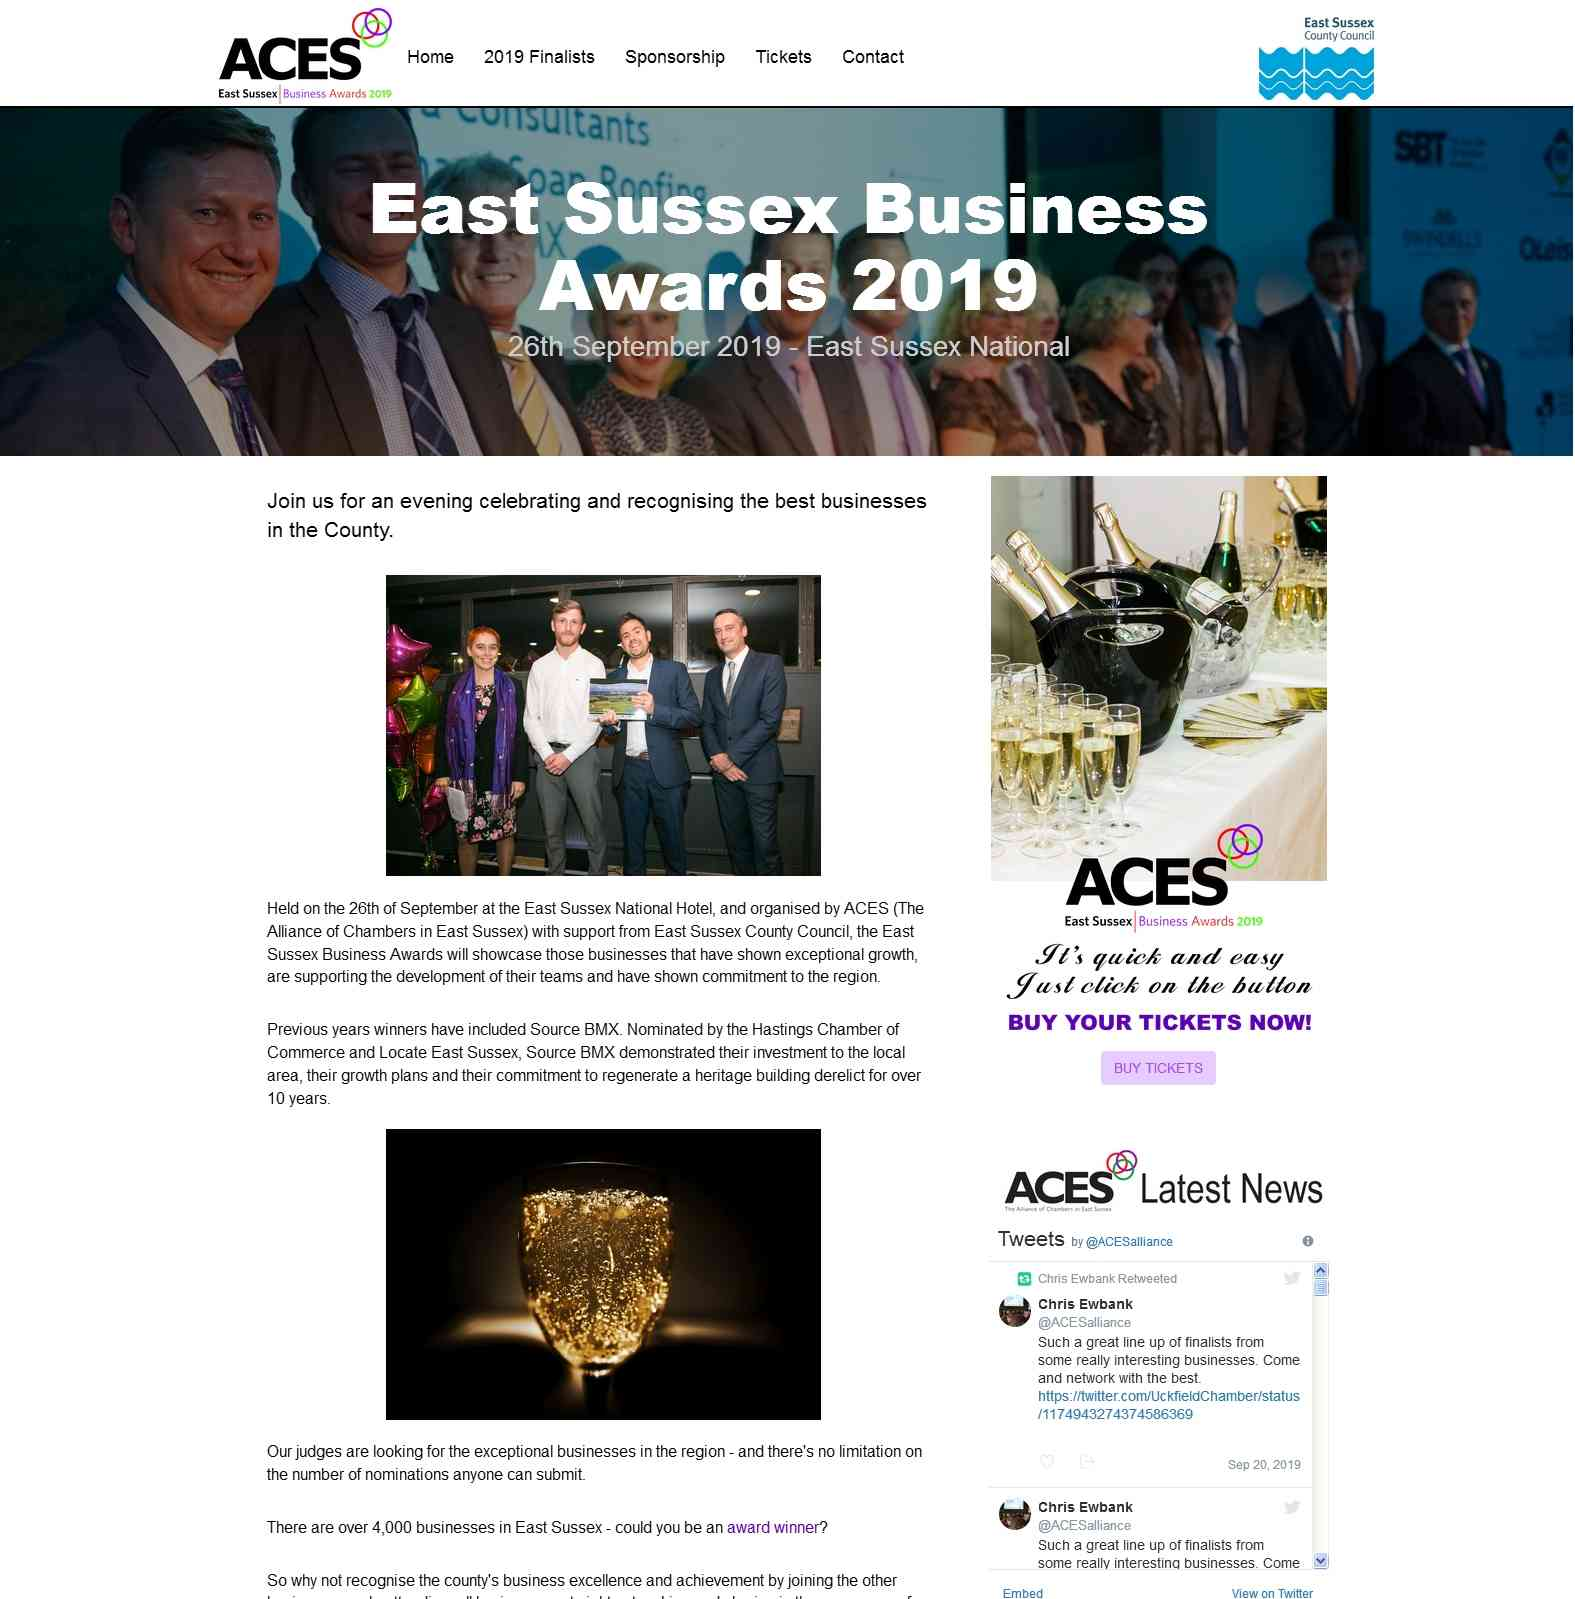 Awards Website Judged As A Hit By East Sussex Chambers of Commerce